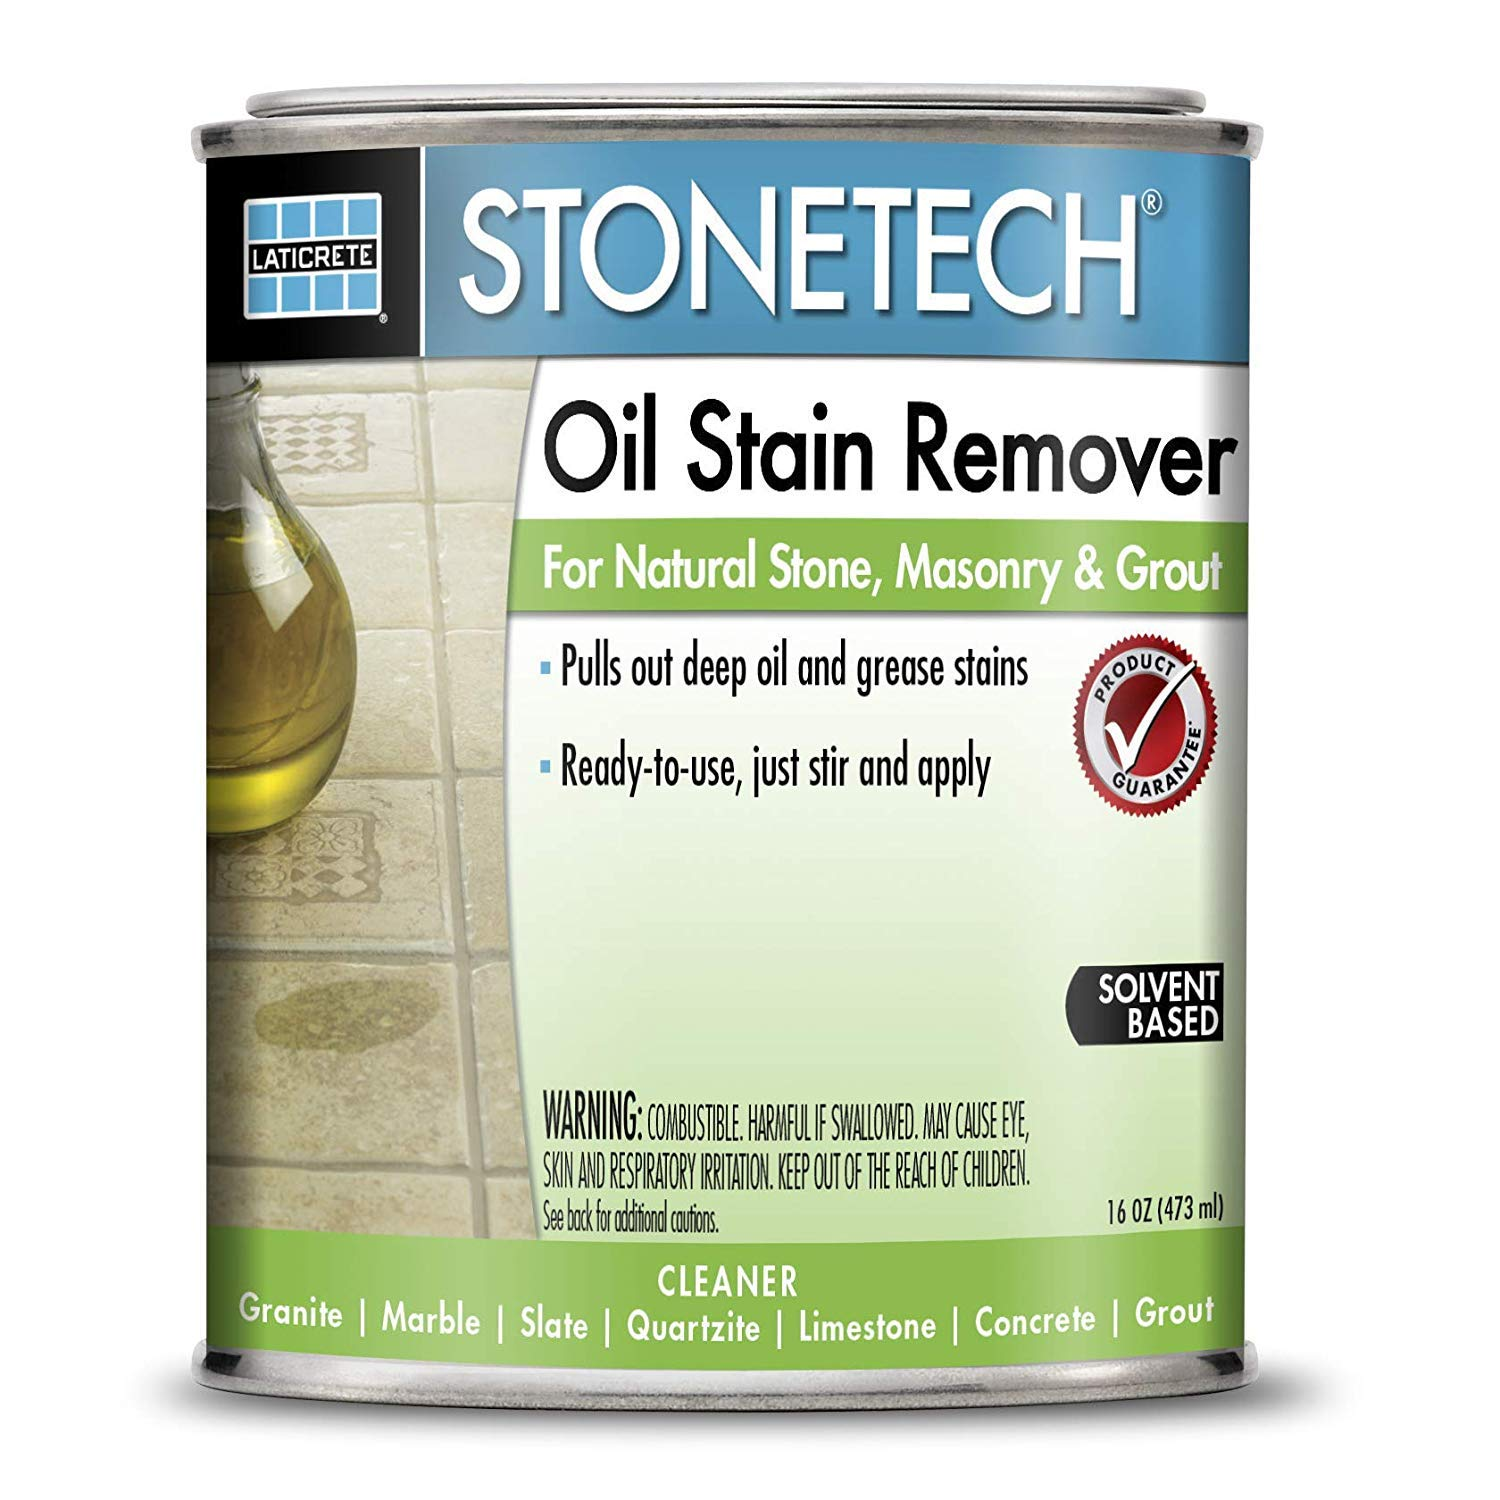 StoneTech EX6-16 1-Pint Oil Stain Remover for Natural Stone Model: EX6-16